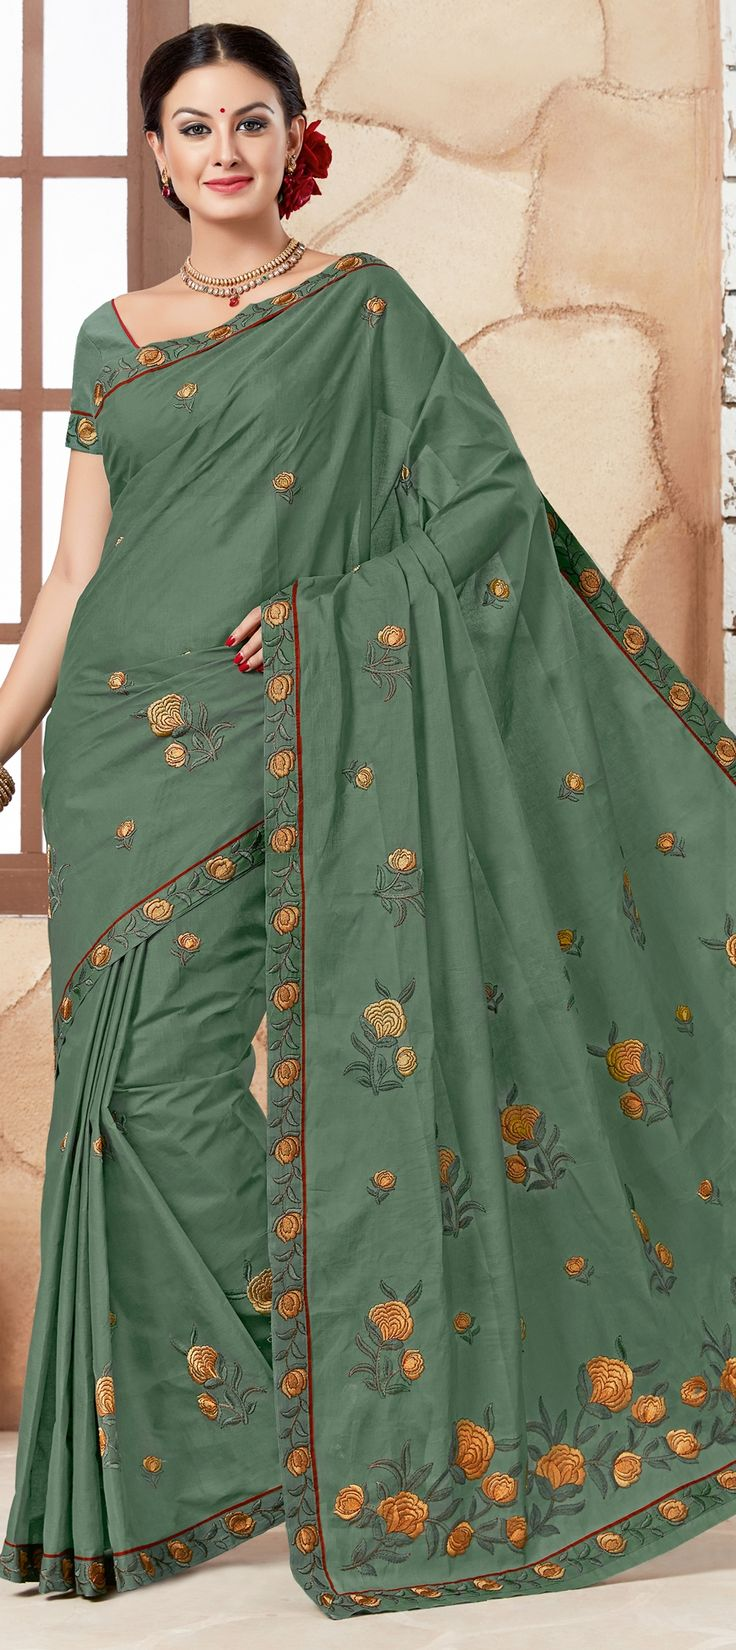 756954 Green color family Embroidered Sarees, Party Wear Sarees in Cotton fabric with Machine Embroidery, Resham, Thread work with matching unstitched blouse.